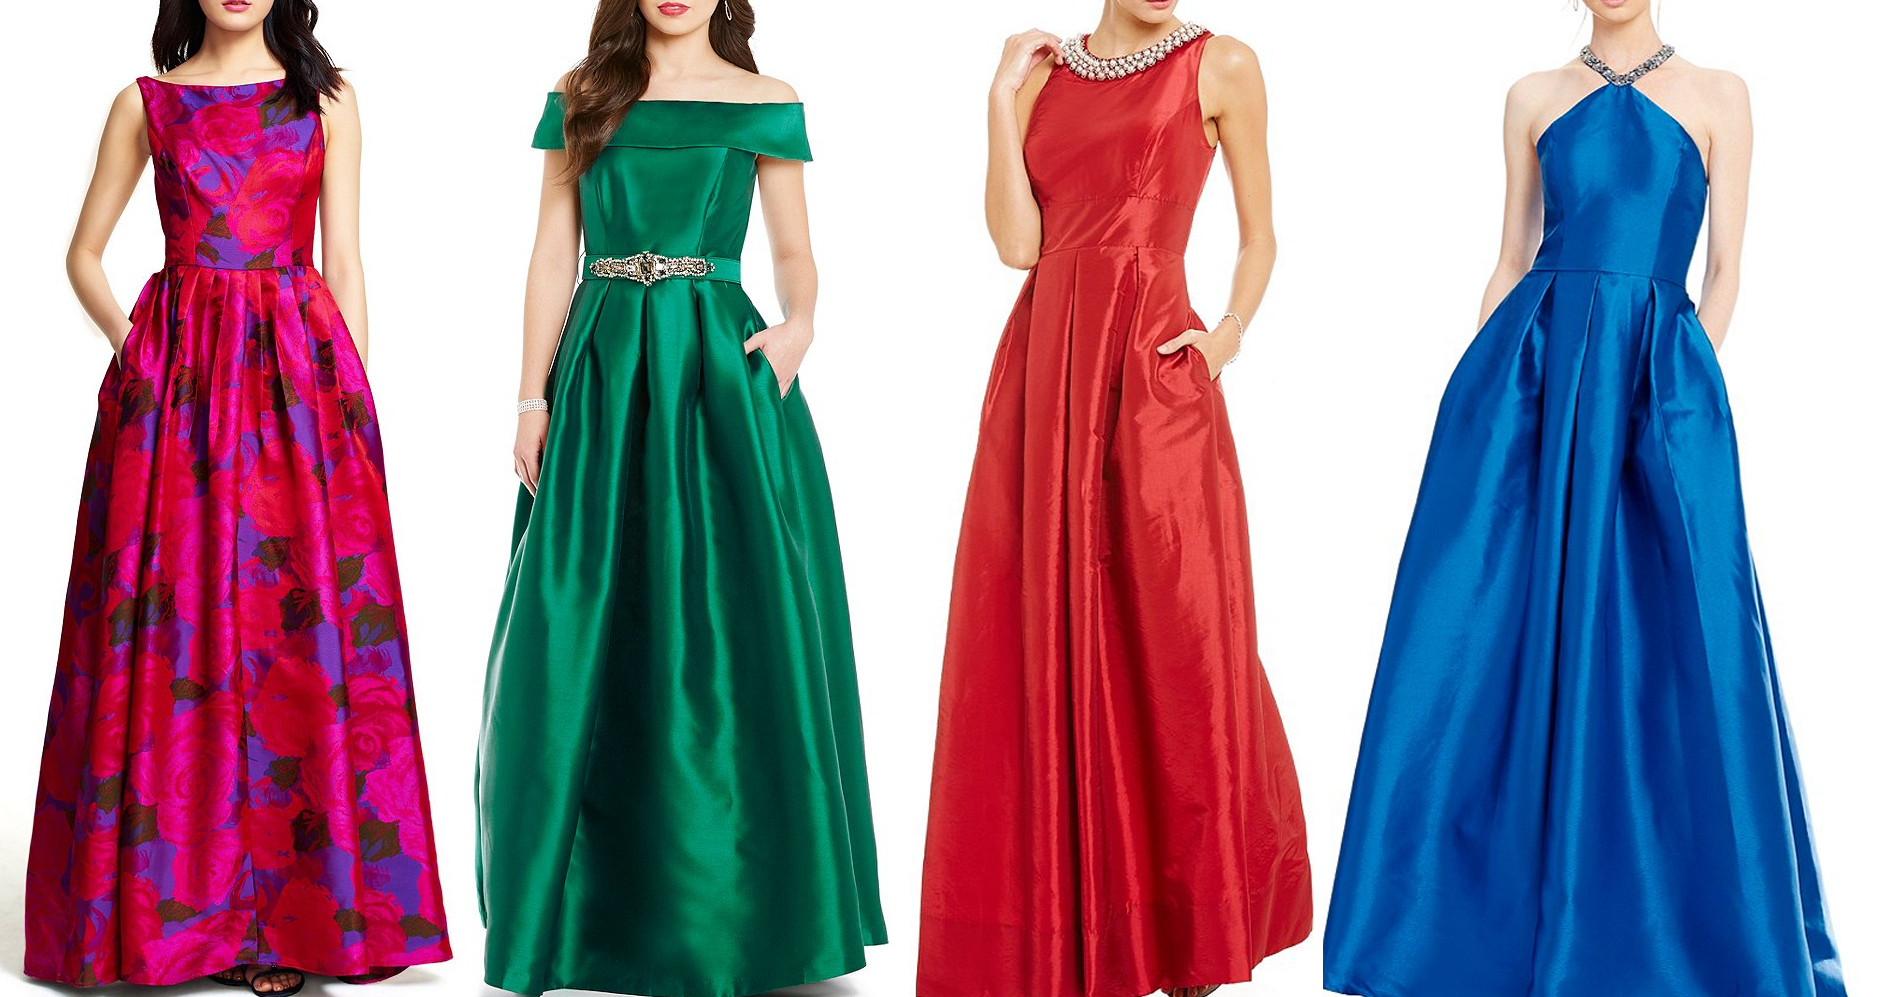 b3f69e7767a2 Womens formal dresses and evening gowns at Dillards - My Fashion Wants